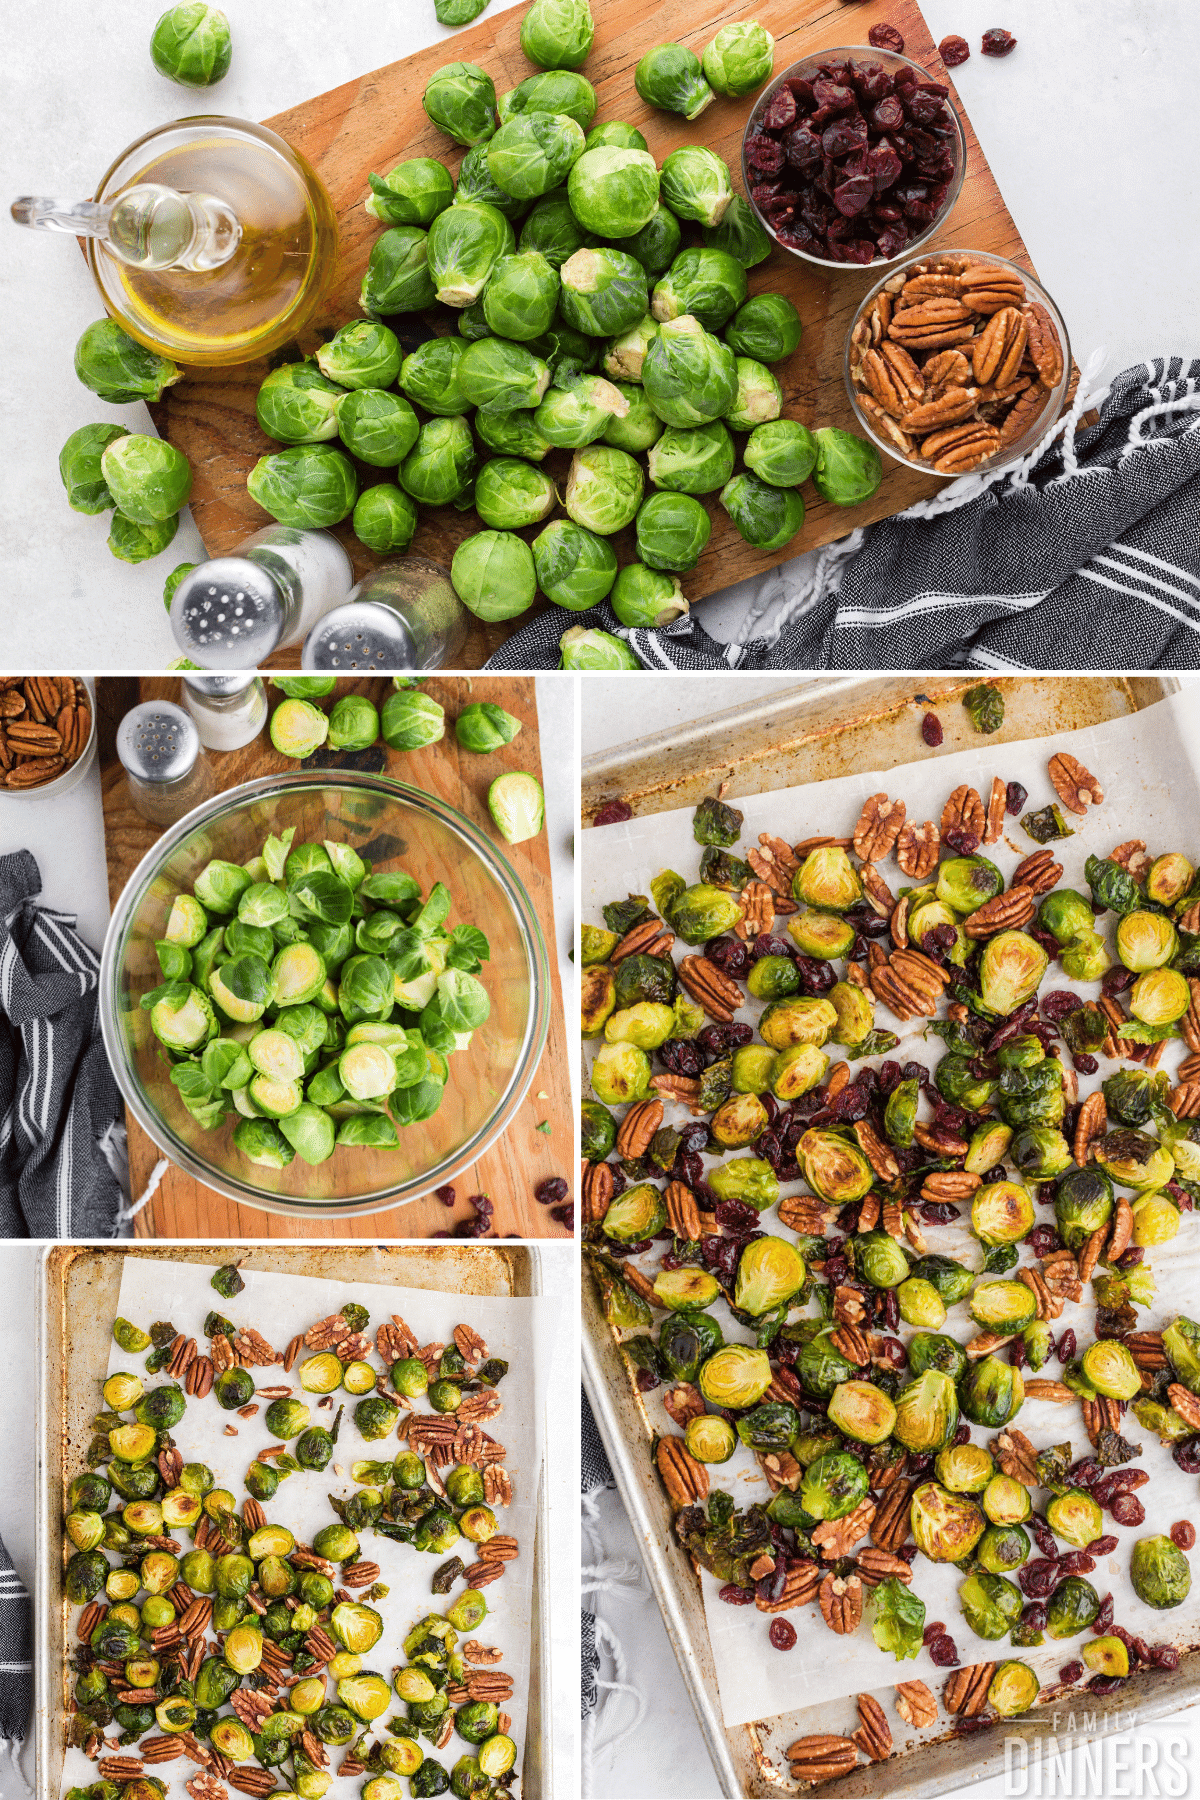 collage of brussels sprouts- Image of cutting board with whole brussel sprouts and bowl of whole pecans and dried cranberries. Image of brussels sprouts cut in half, image of cut brussels sprouts and pecans on a baking sheet. Image of roasted Brussels sprouts and roasted pecans and dried cranberries on a baking sheet.